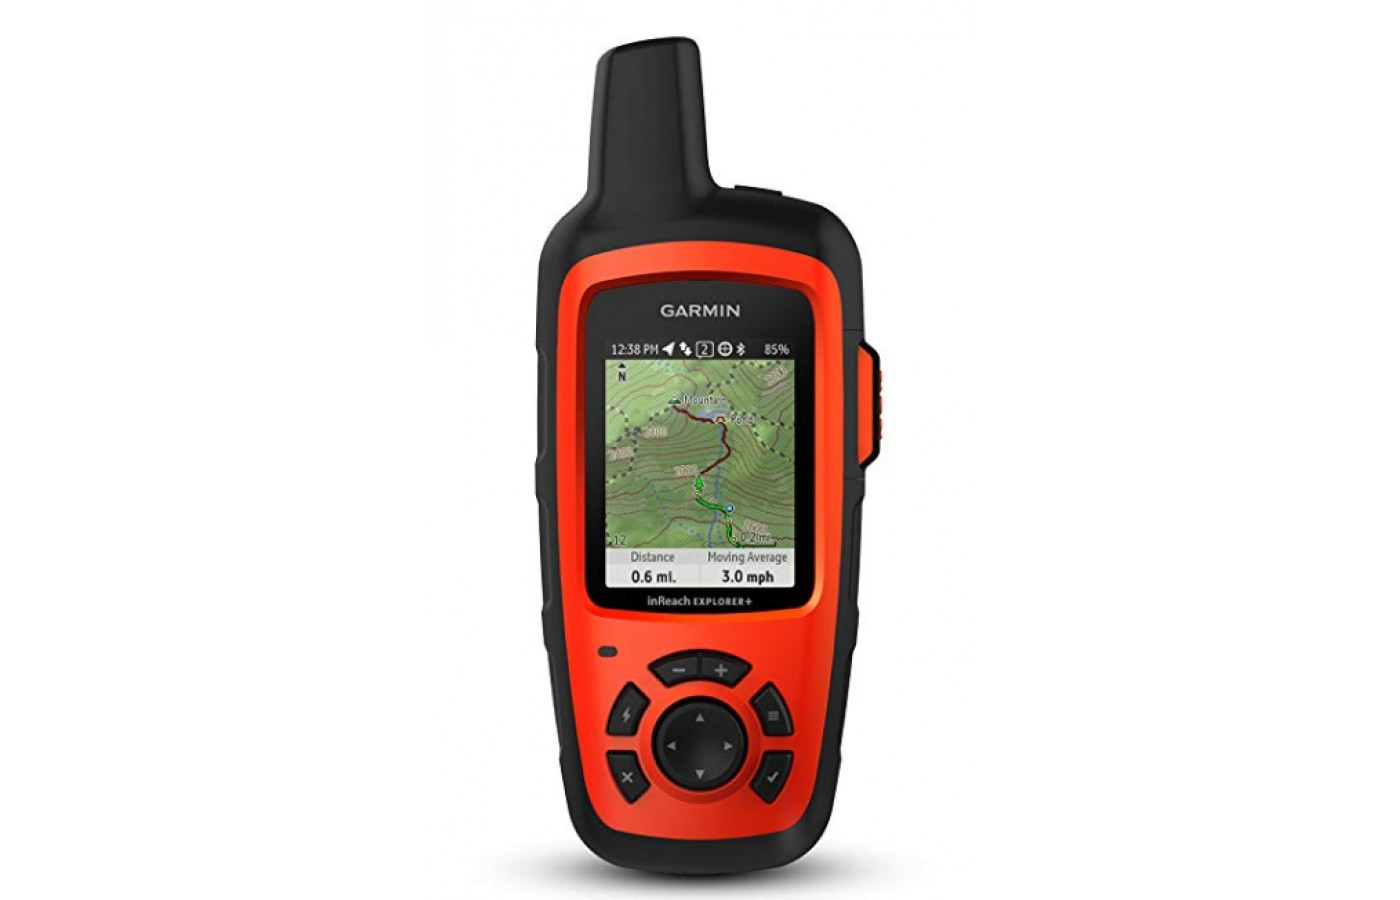 Garmin Explorer + Mapping abilities are an added feature.